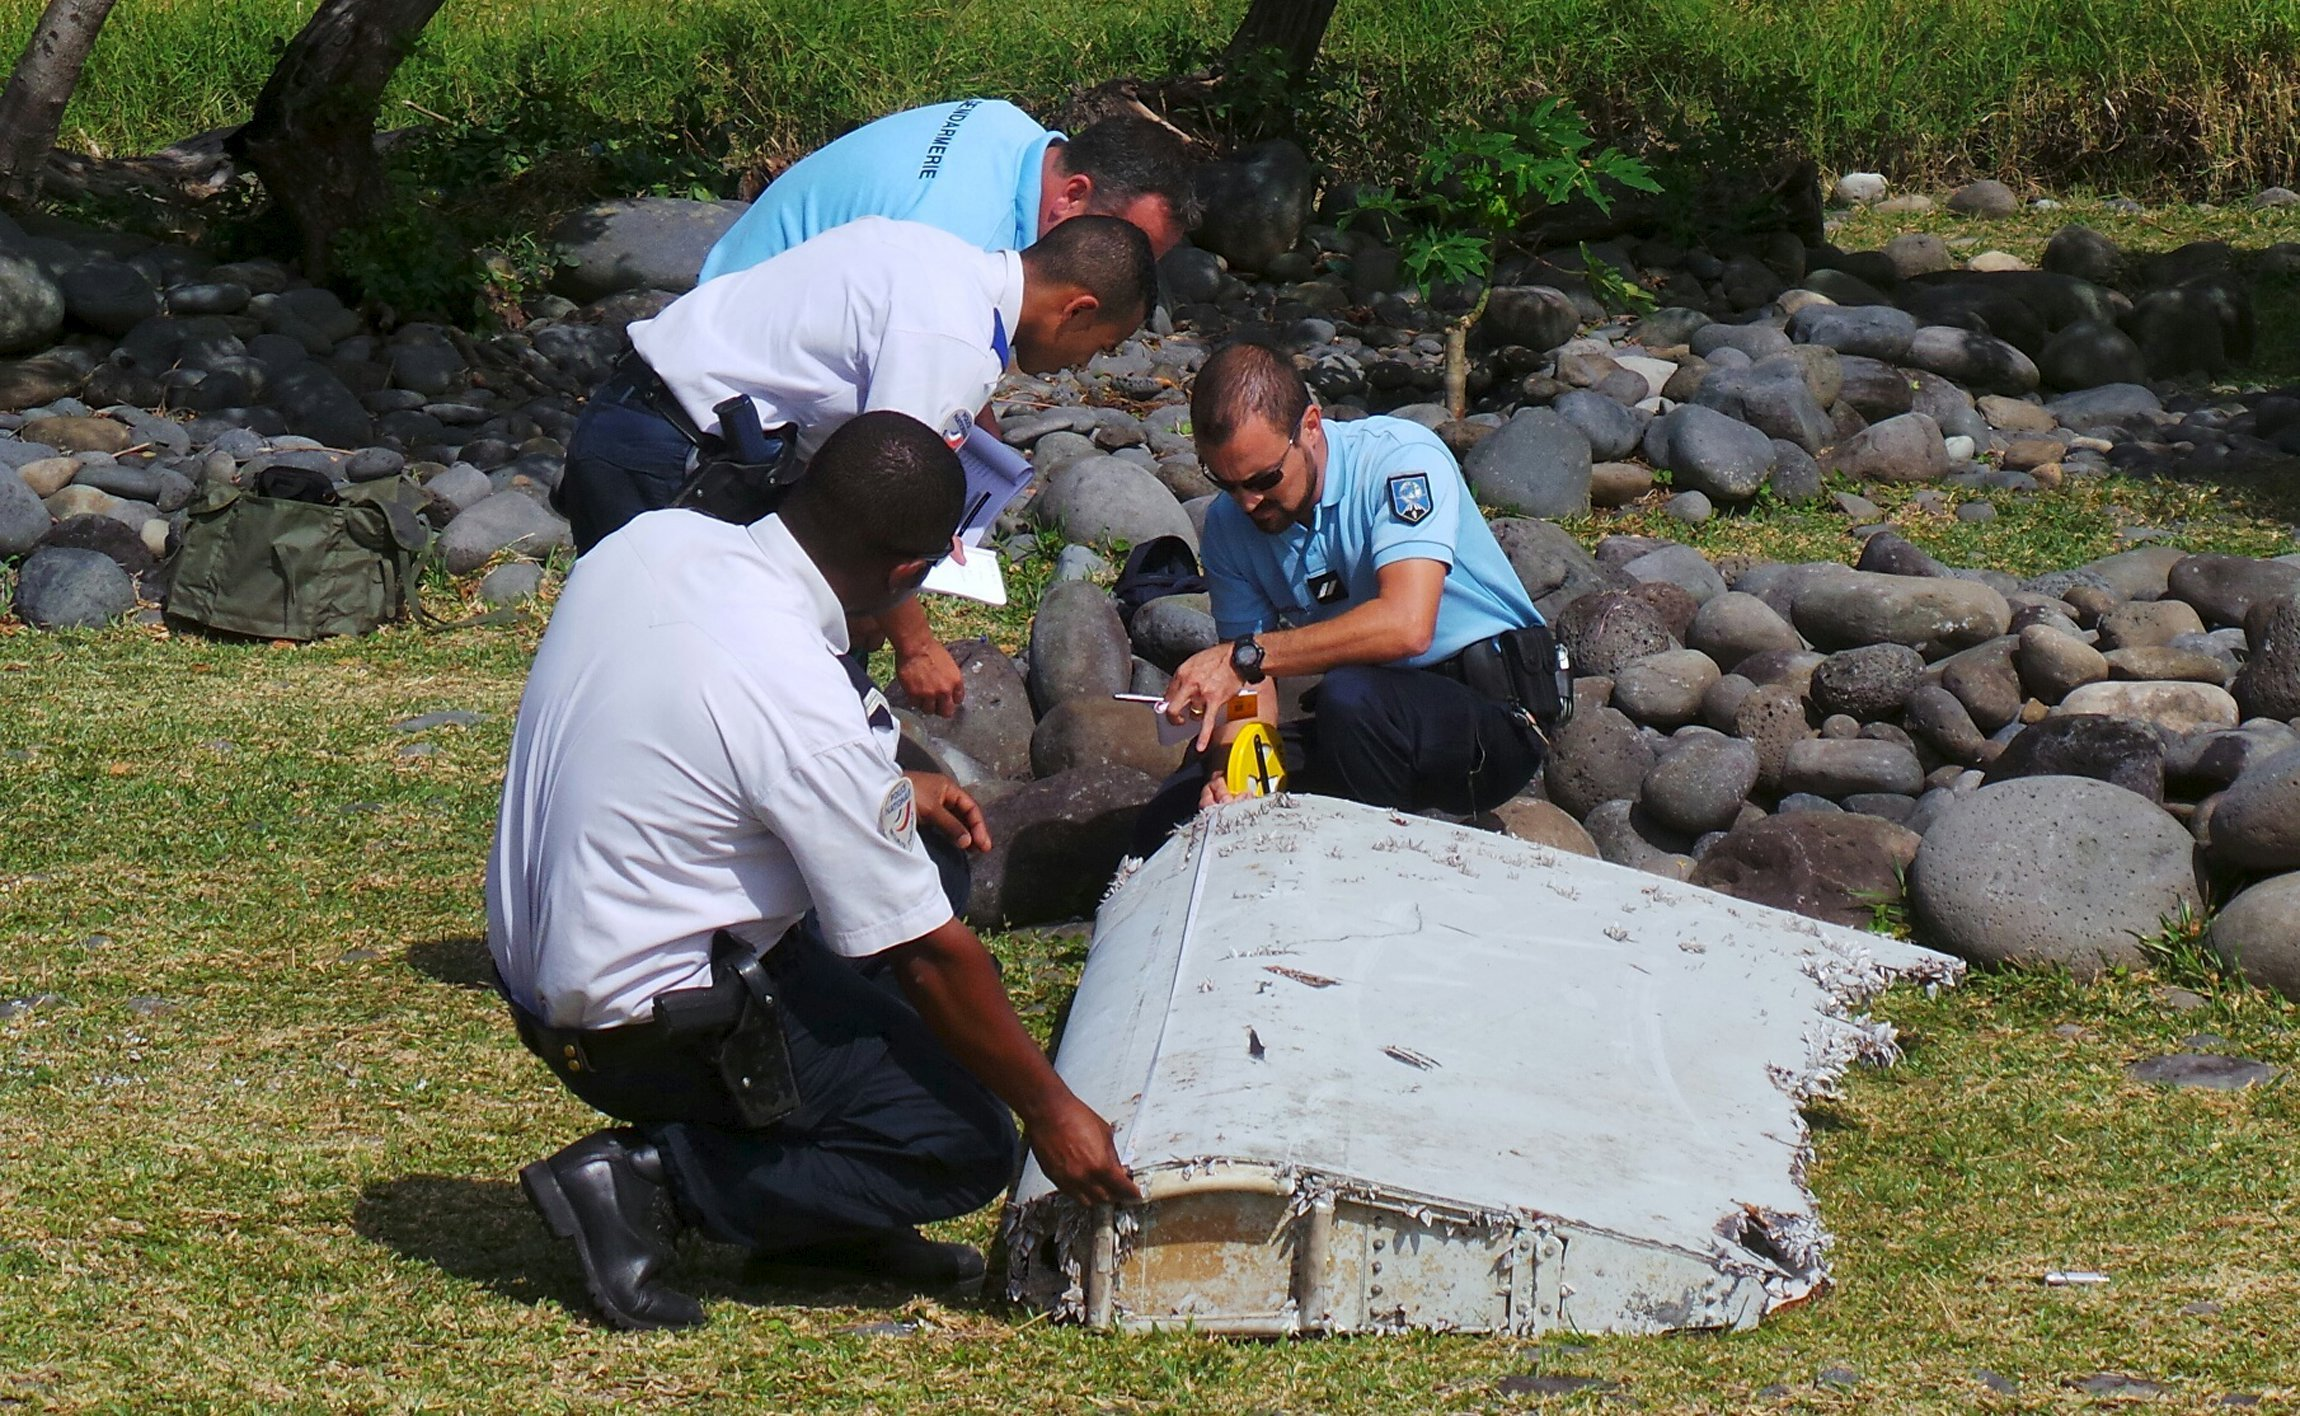 MH370 was flown into water 'deliberately', crash expert says